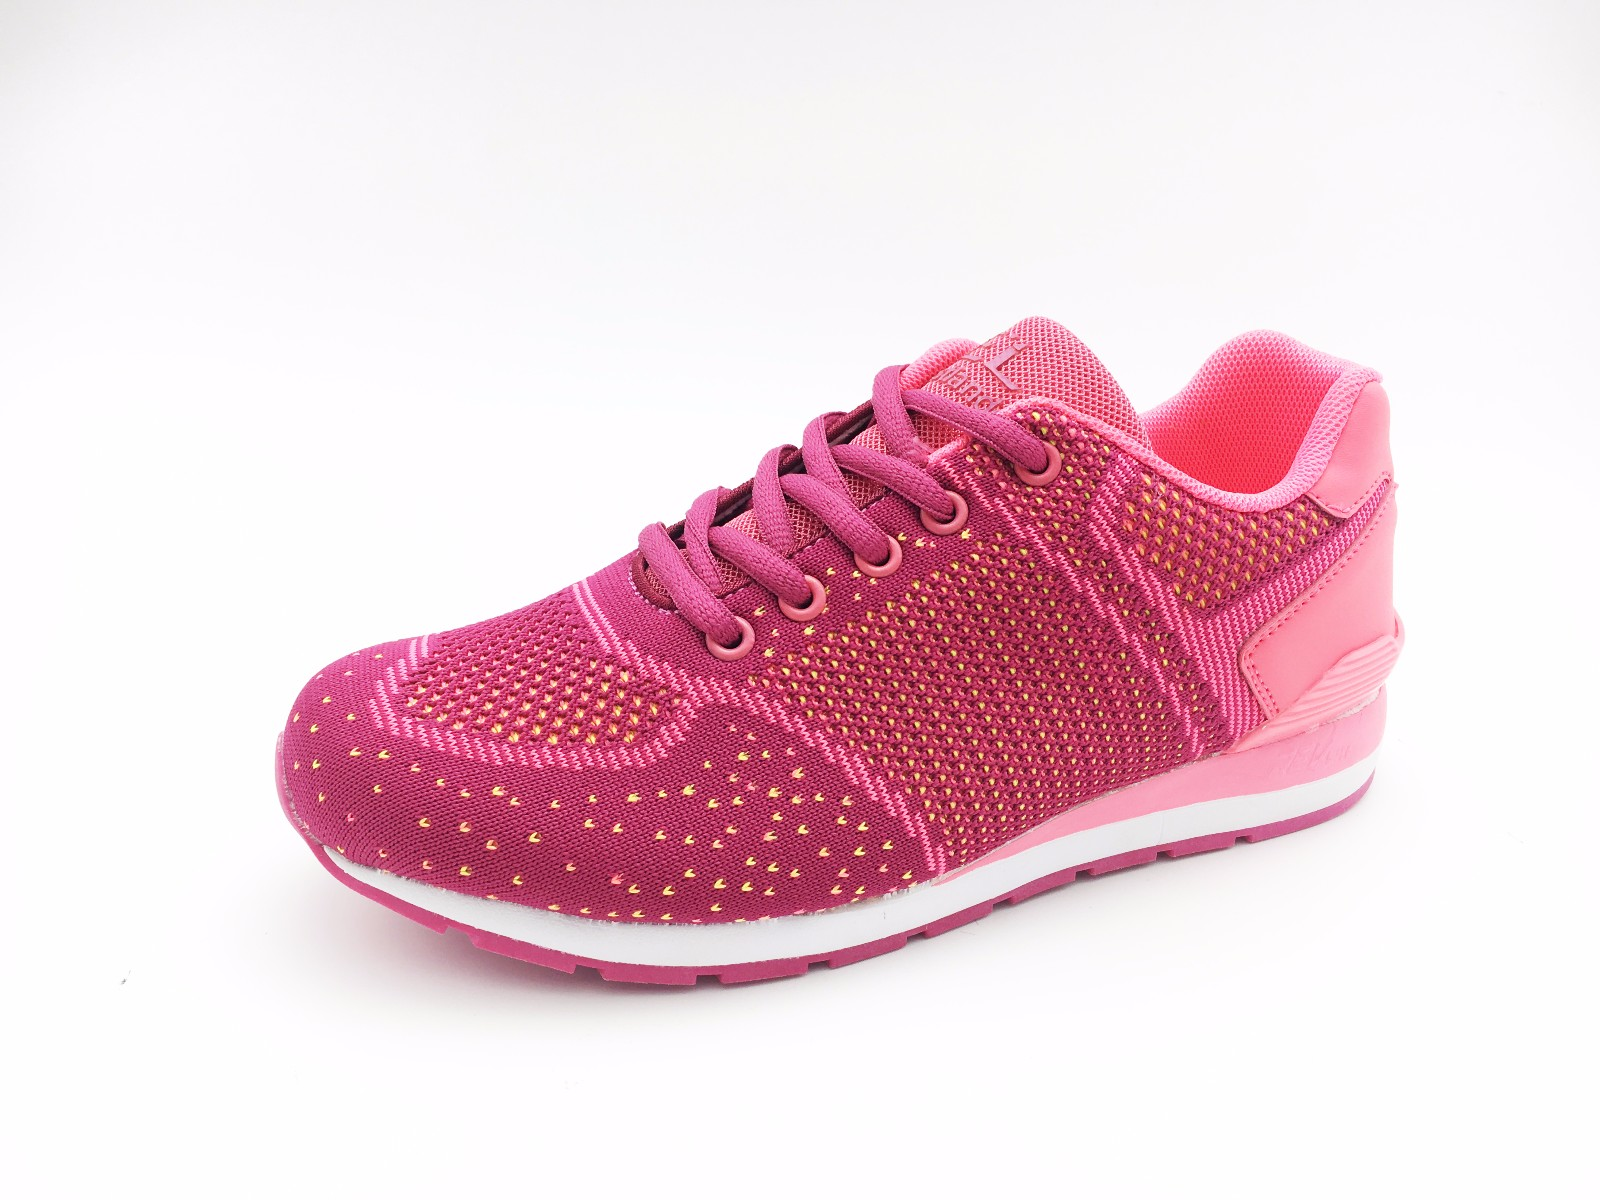 Flyknit Sneakers Running Shoes for Women Manufacturers, Flyknit Sneakers Running Shoes for Women Factory, Supply Flyknit Sneakers Running Shoes for Women